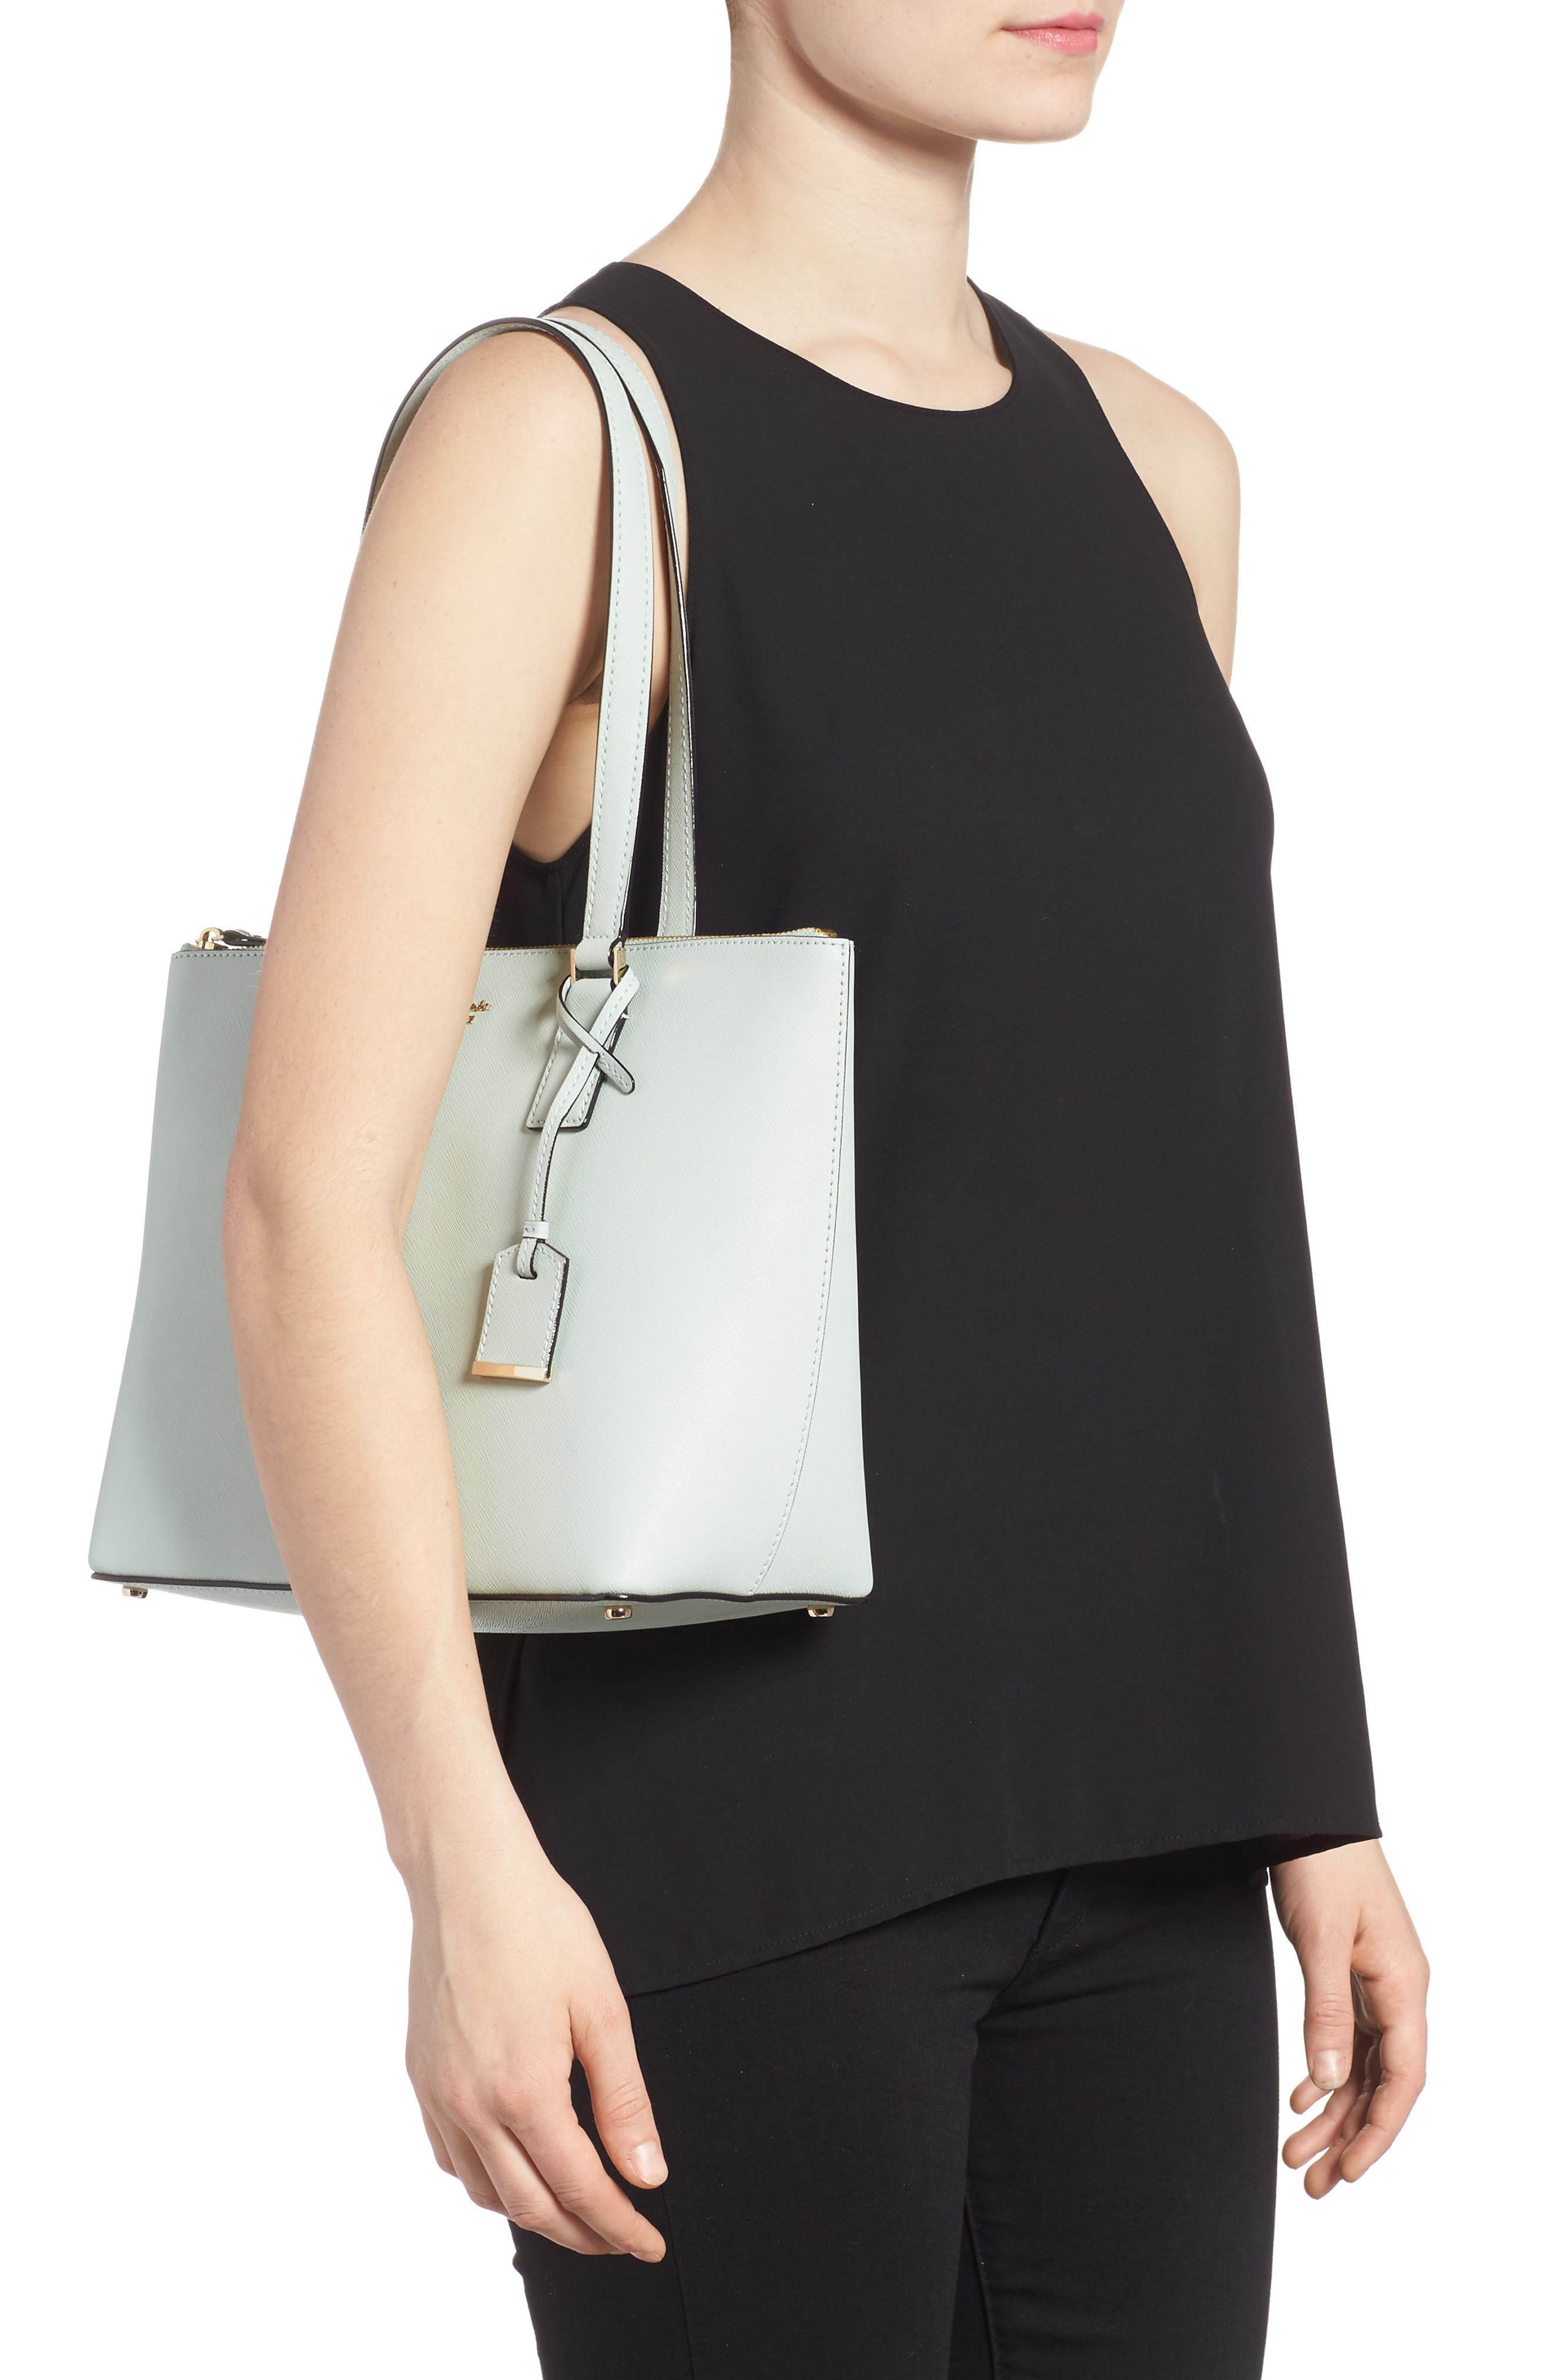 cameron street - small lucie leather tote,                             Alternate thumbnail 2, color,                             Misty Mint